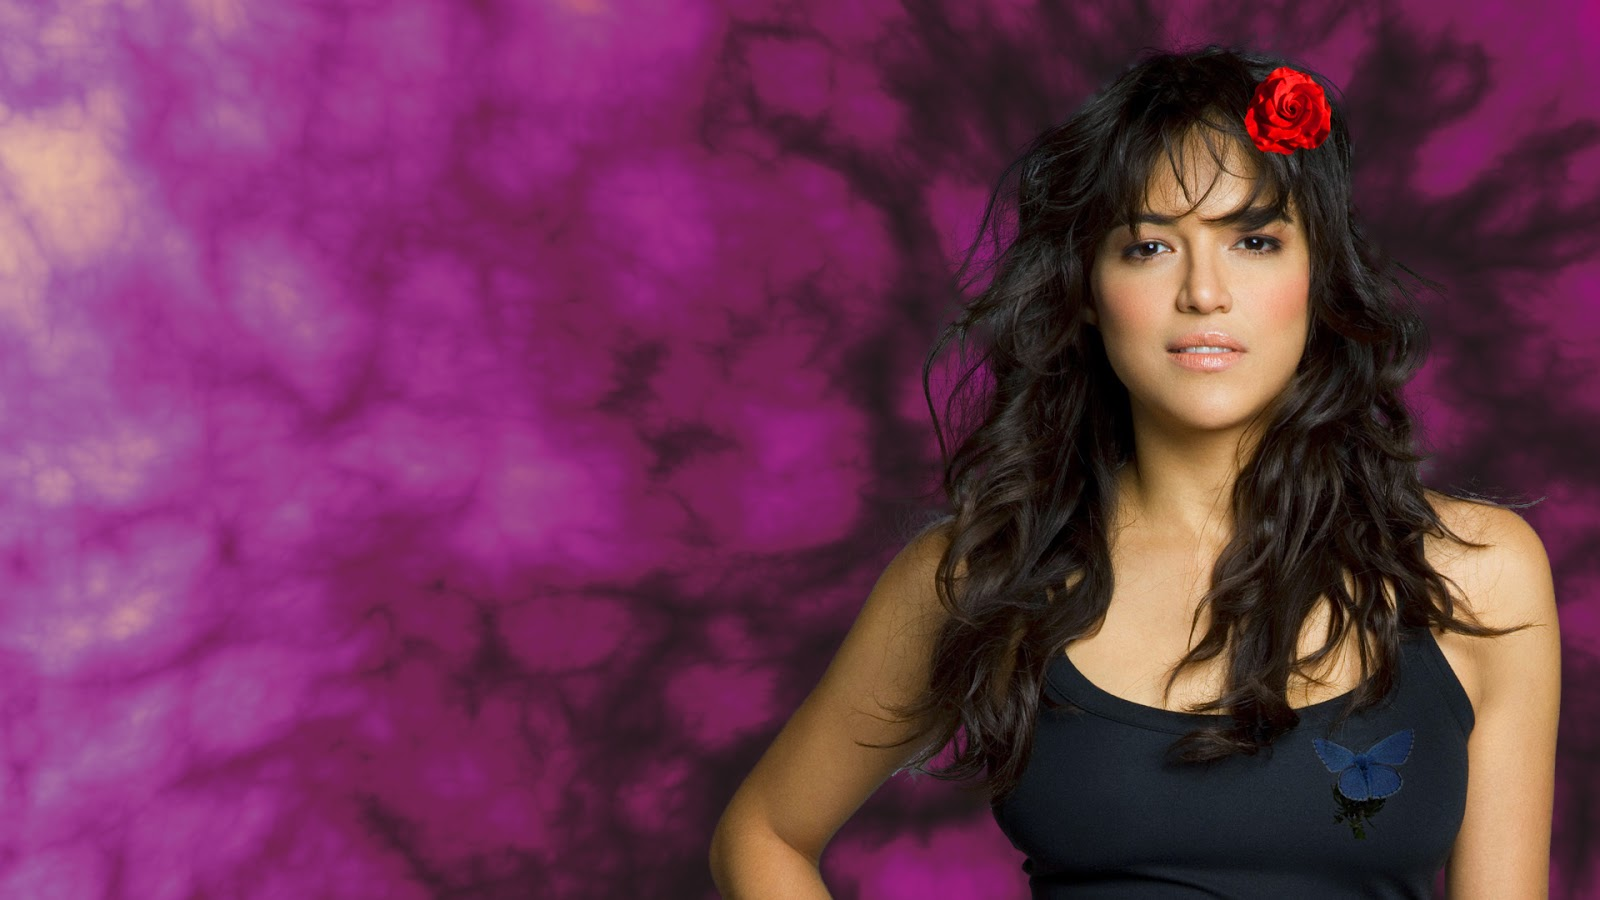 http://3.bp.blogspot.com/-3bE-ksWog7U/USGjM24QfFI/AAAAAAAADgY/FkjNkElTlAw/s1600/Michelle-Rodriguez-Hd-hot-wallpaper-78576.jpg